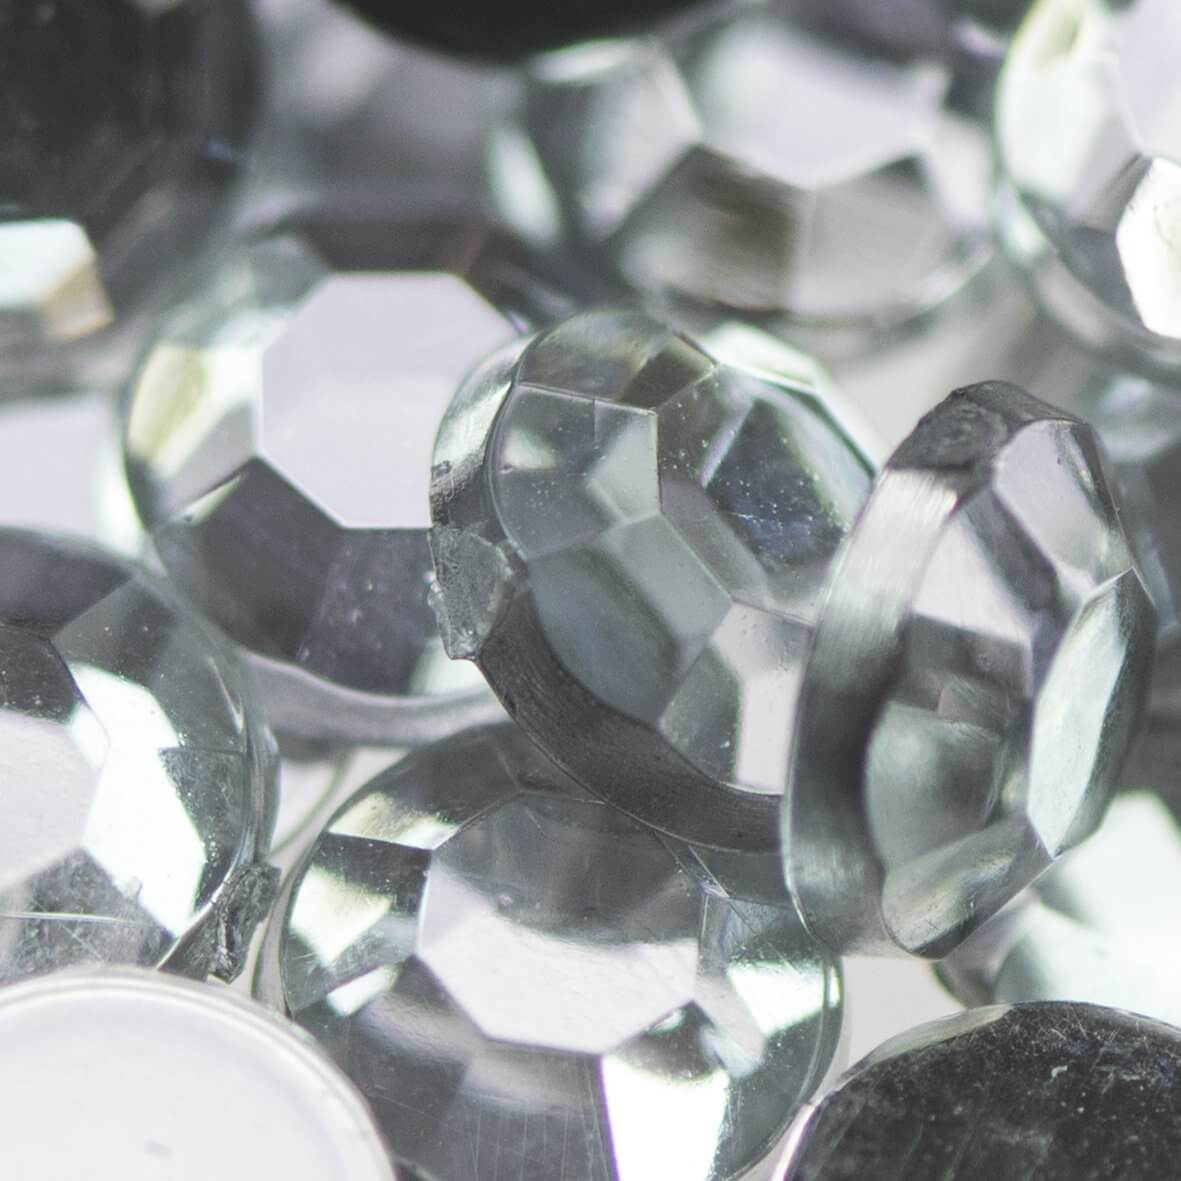 4.5mm Acrylic Diamante Gems Wholesale Packs